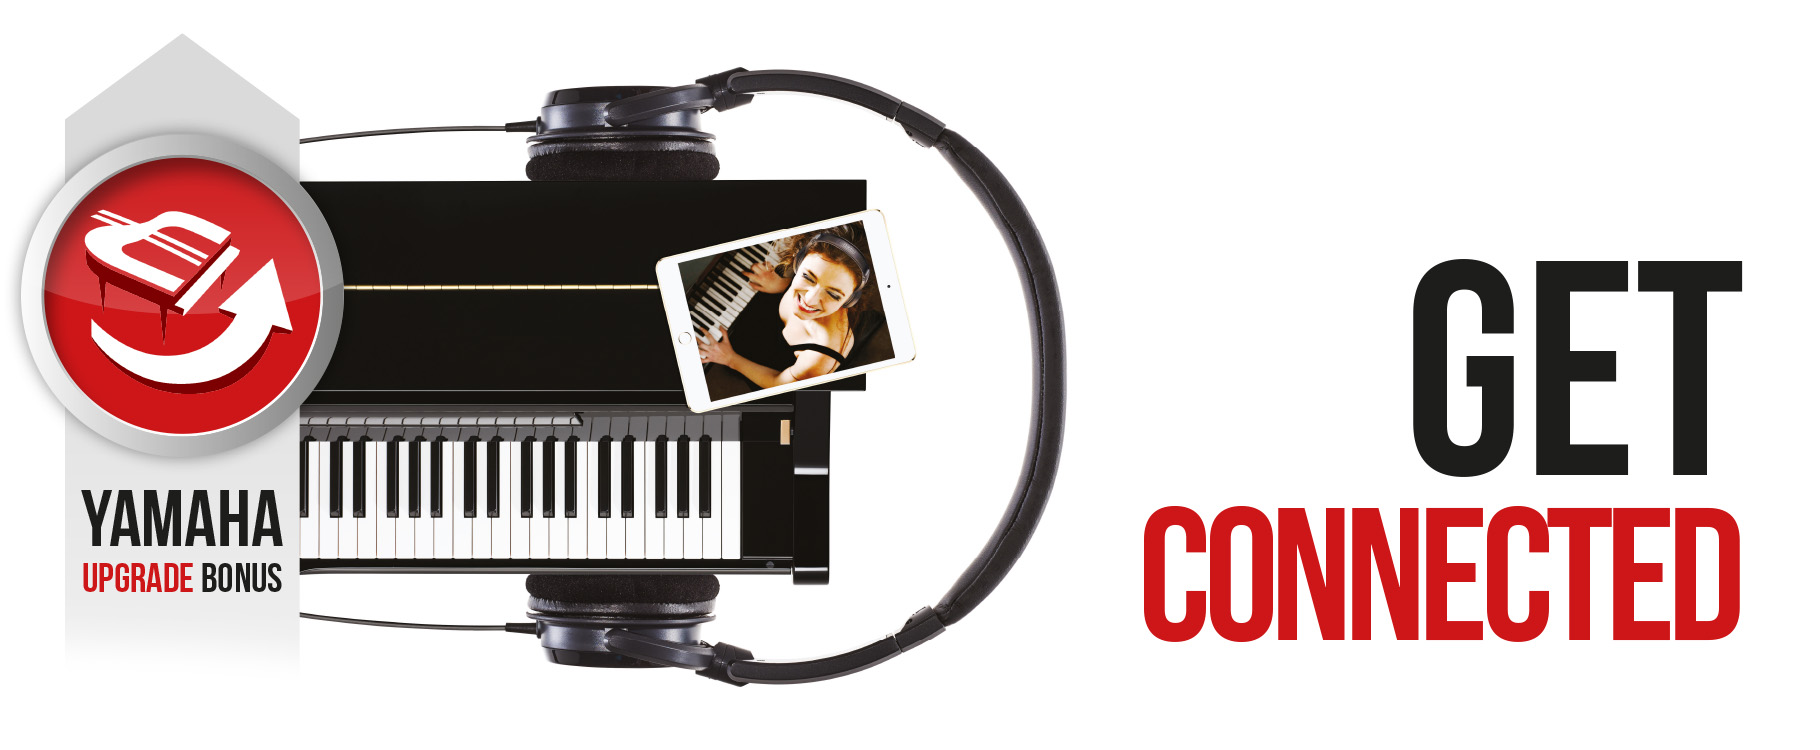 Get Connected Title Image